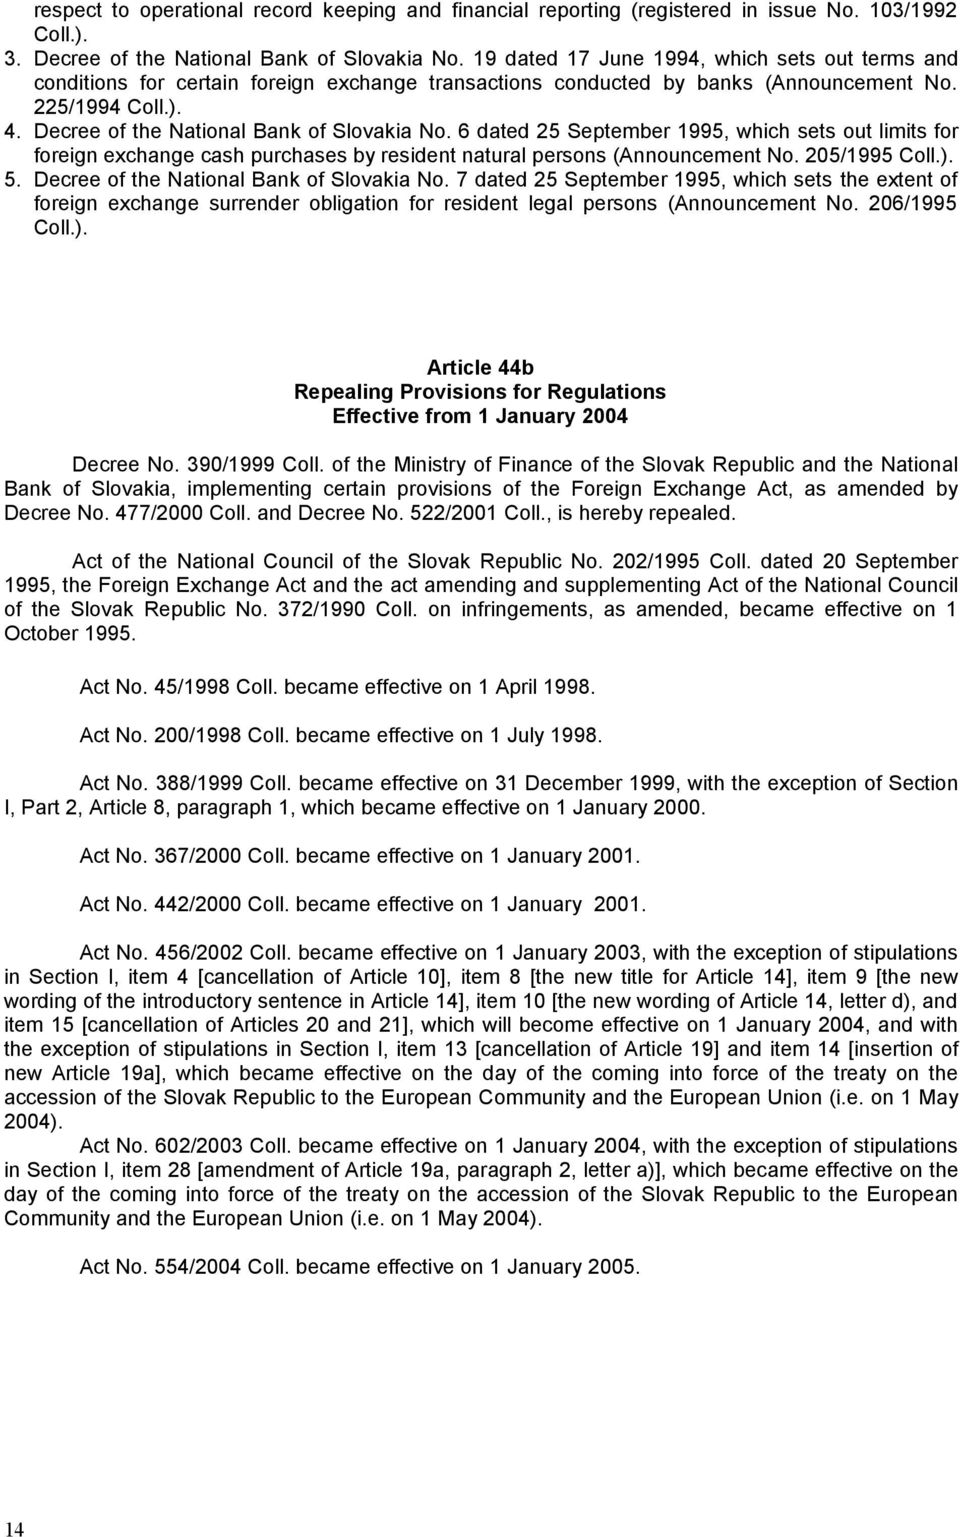 Decree of the National Bank of Slovakia No. 6 dated 25 September 1995, which sets out limits for foreign exchange cash purchases by resident natural persons (Announcement No. 205/1995 Coll.). 5.